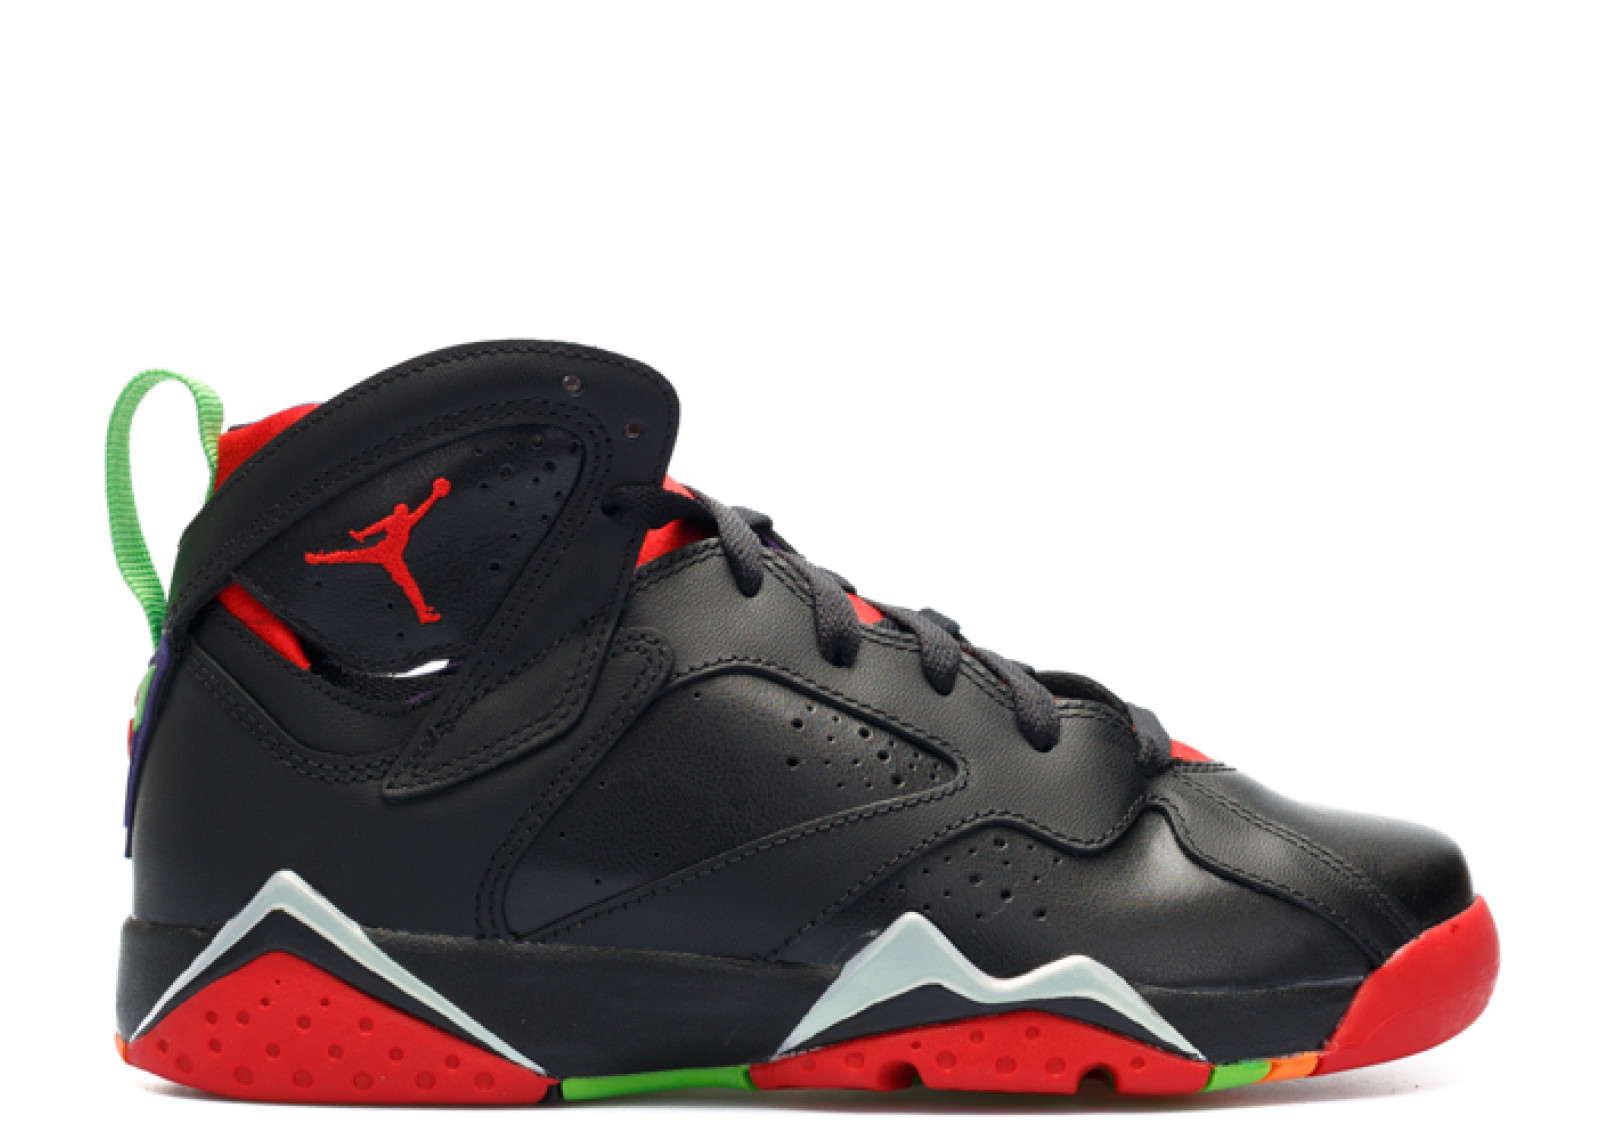 info for a4329 006d1 Air Jordan - Unisex - Air Jordan 7 Retro Bg (Gs)  Marvin The Martian  -  304774-029 - Size 4.5